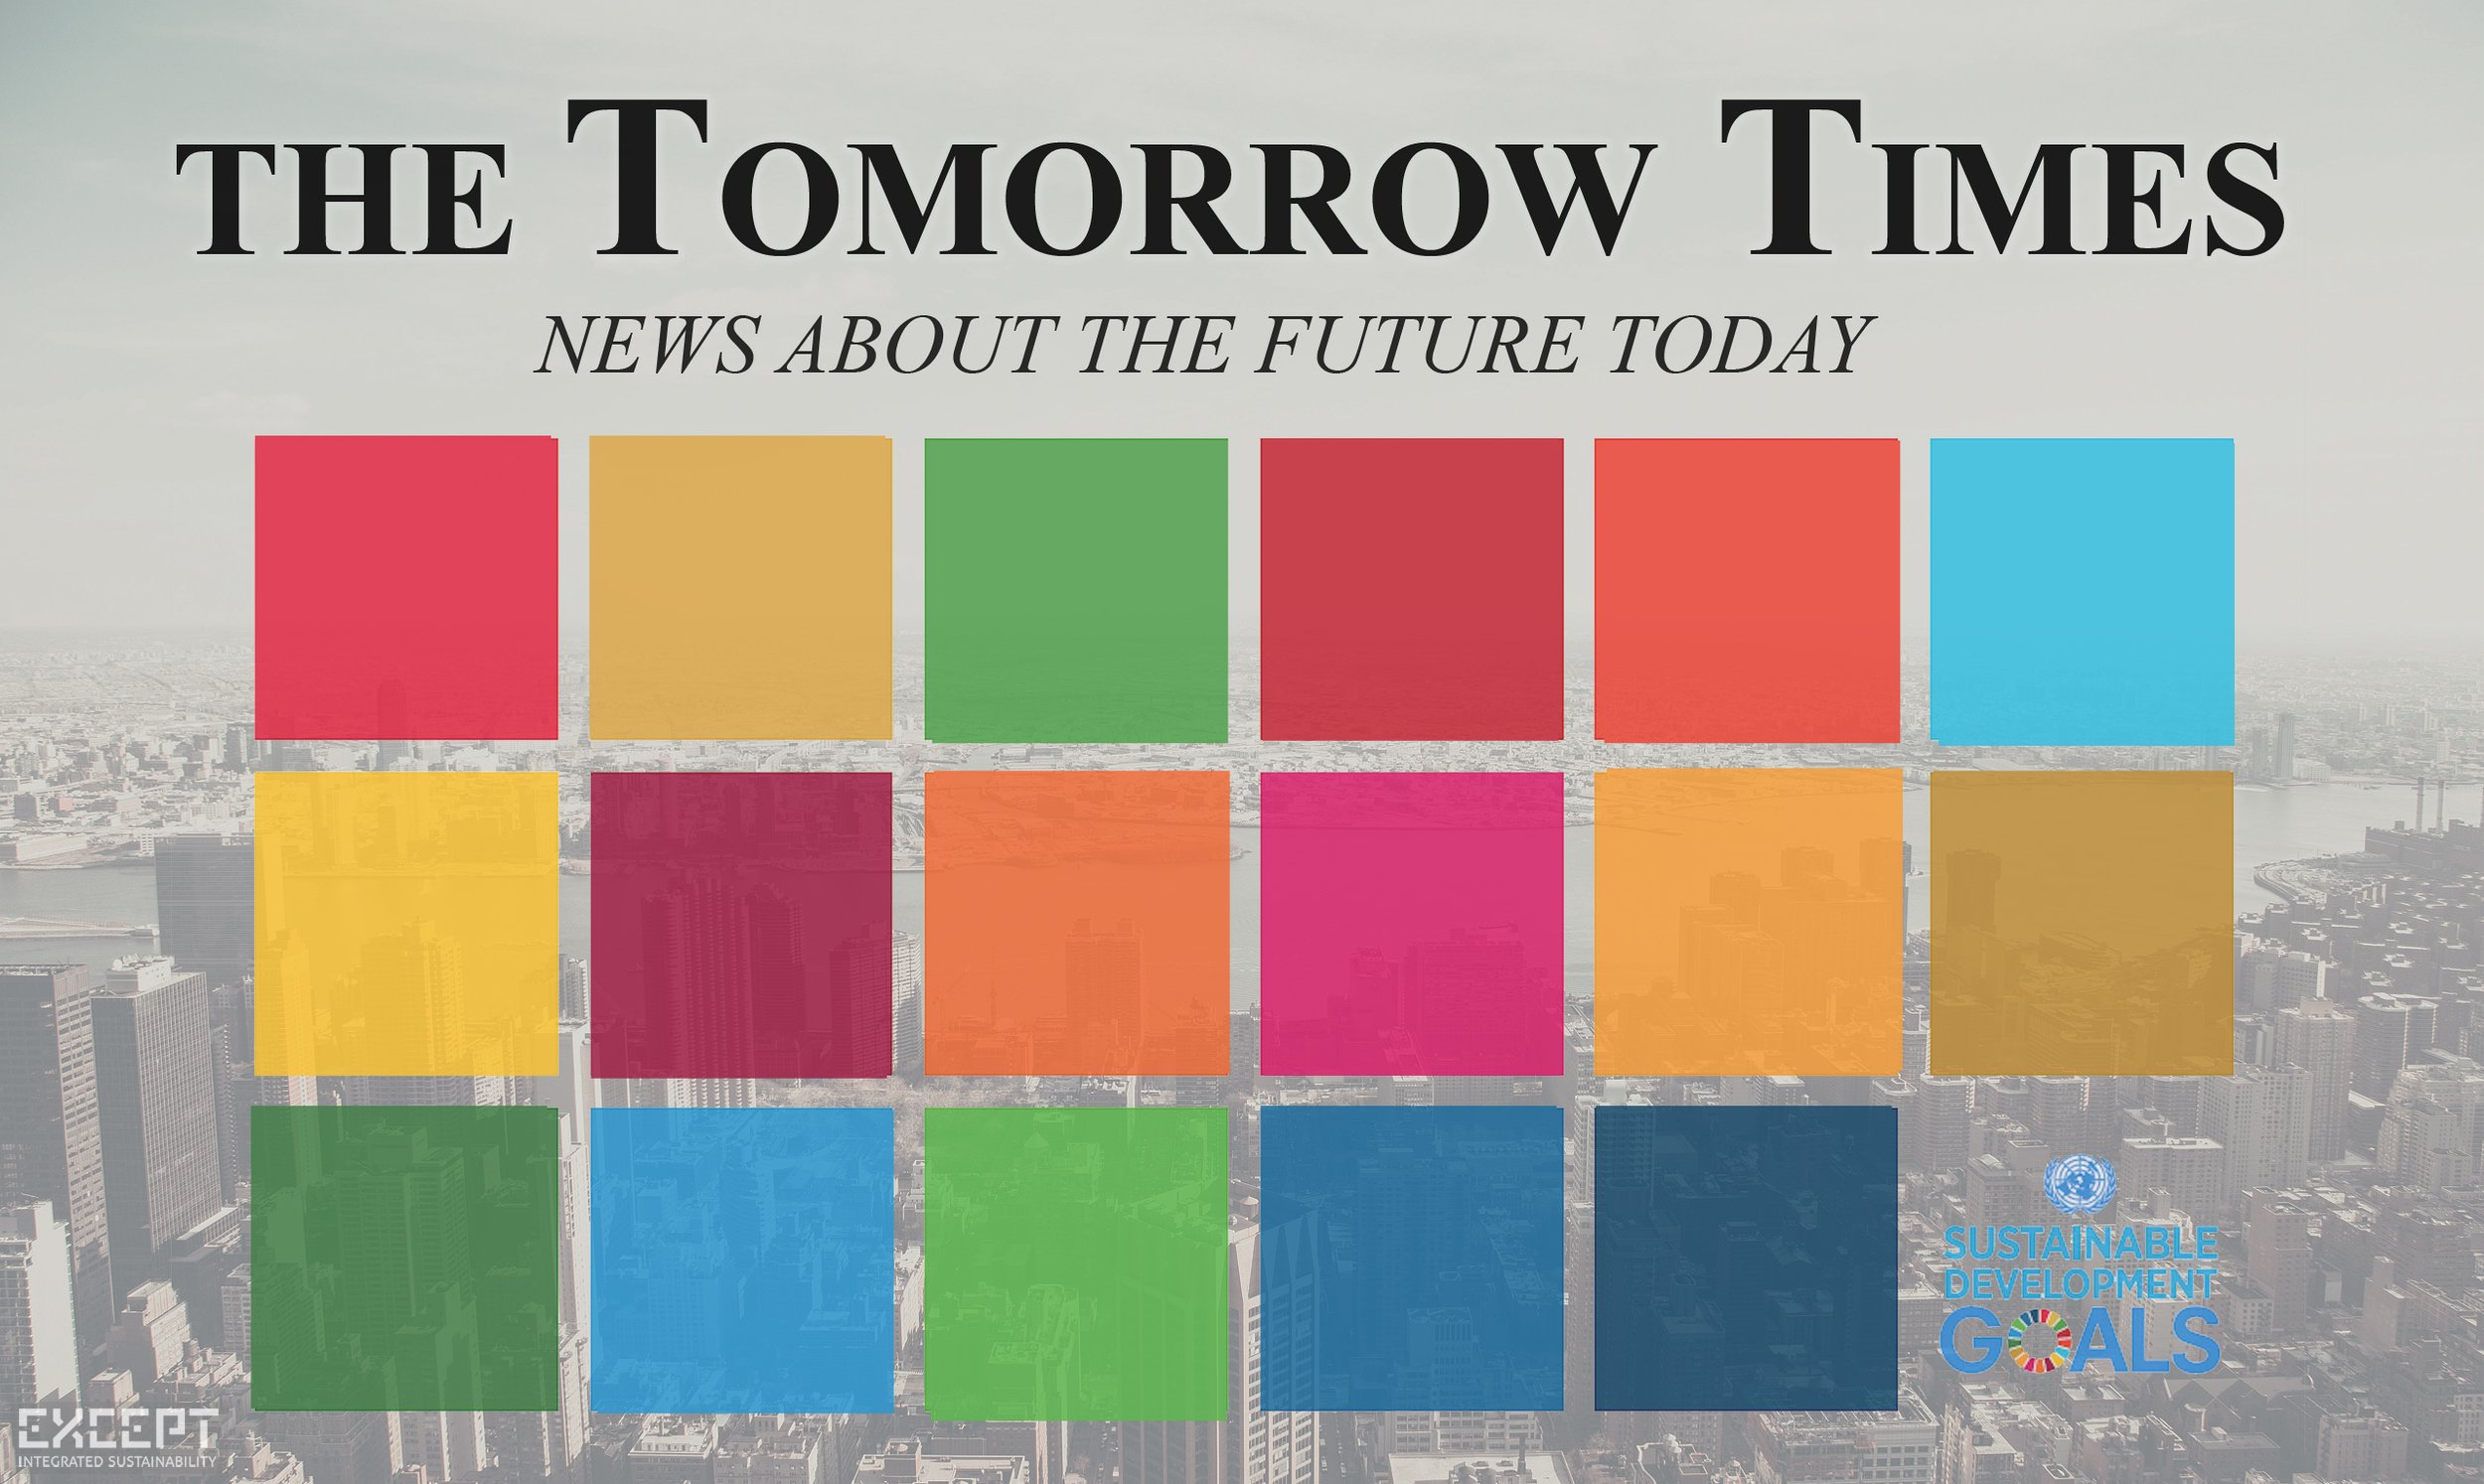 Sustainable Developments goals EMAIL the Tomorrow Times March 19 -